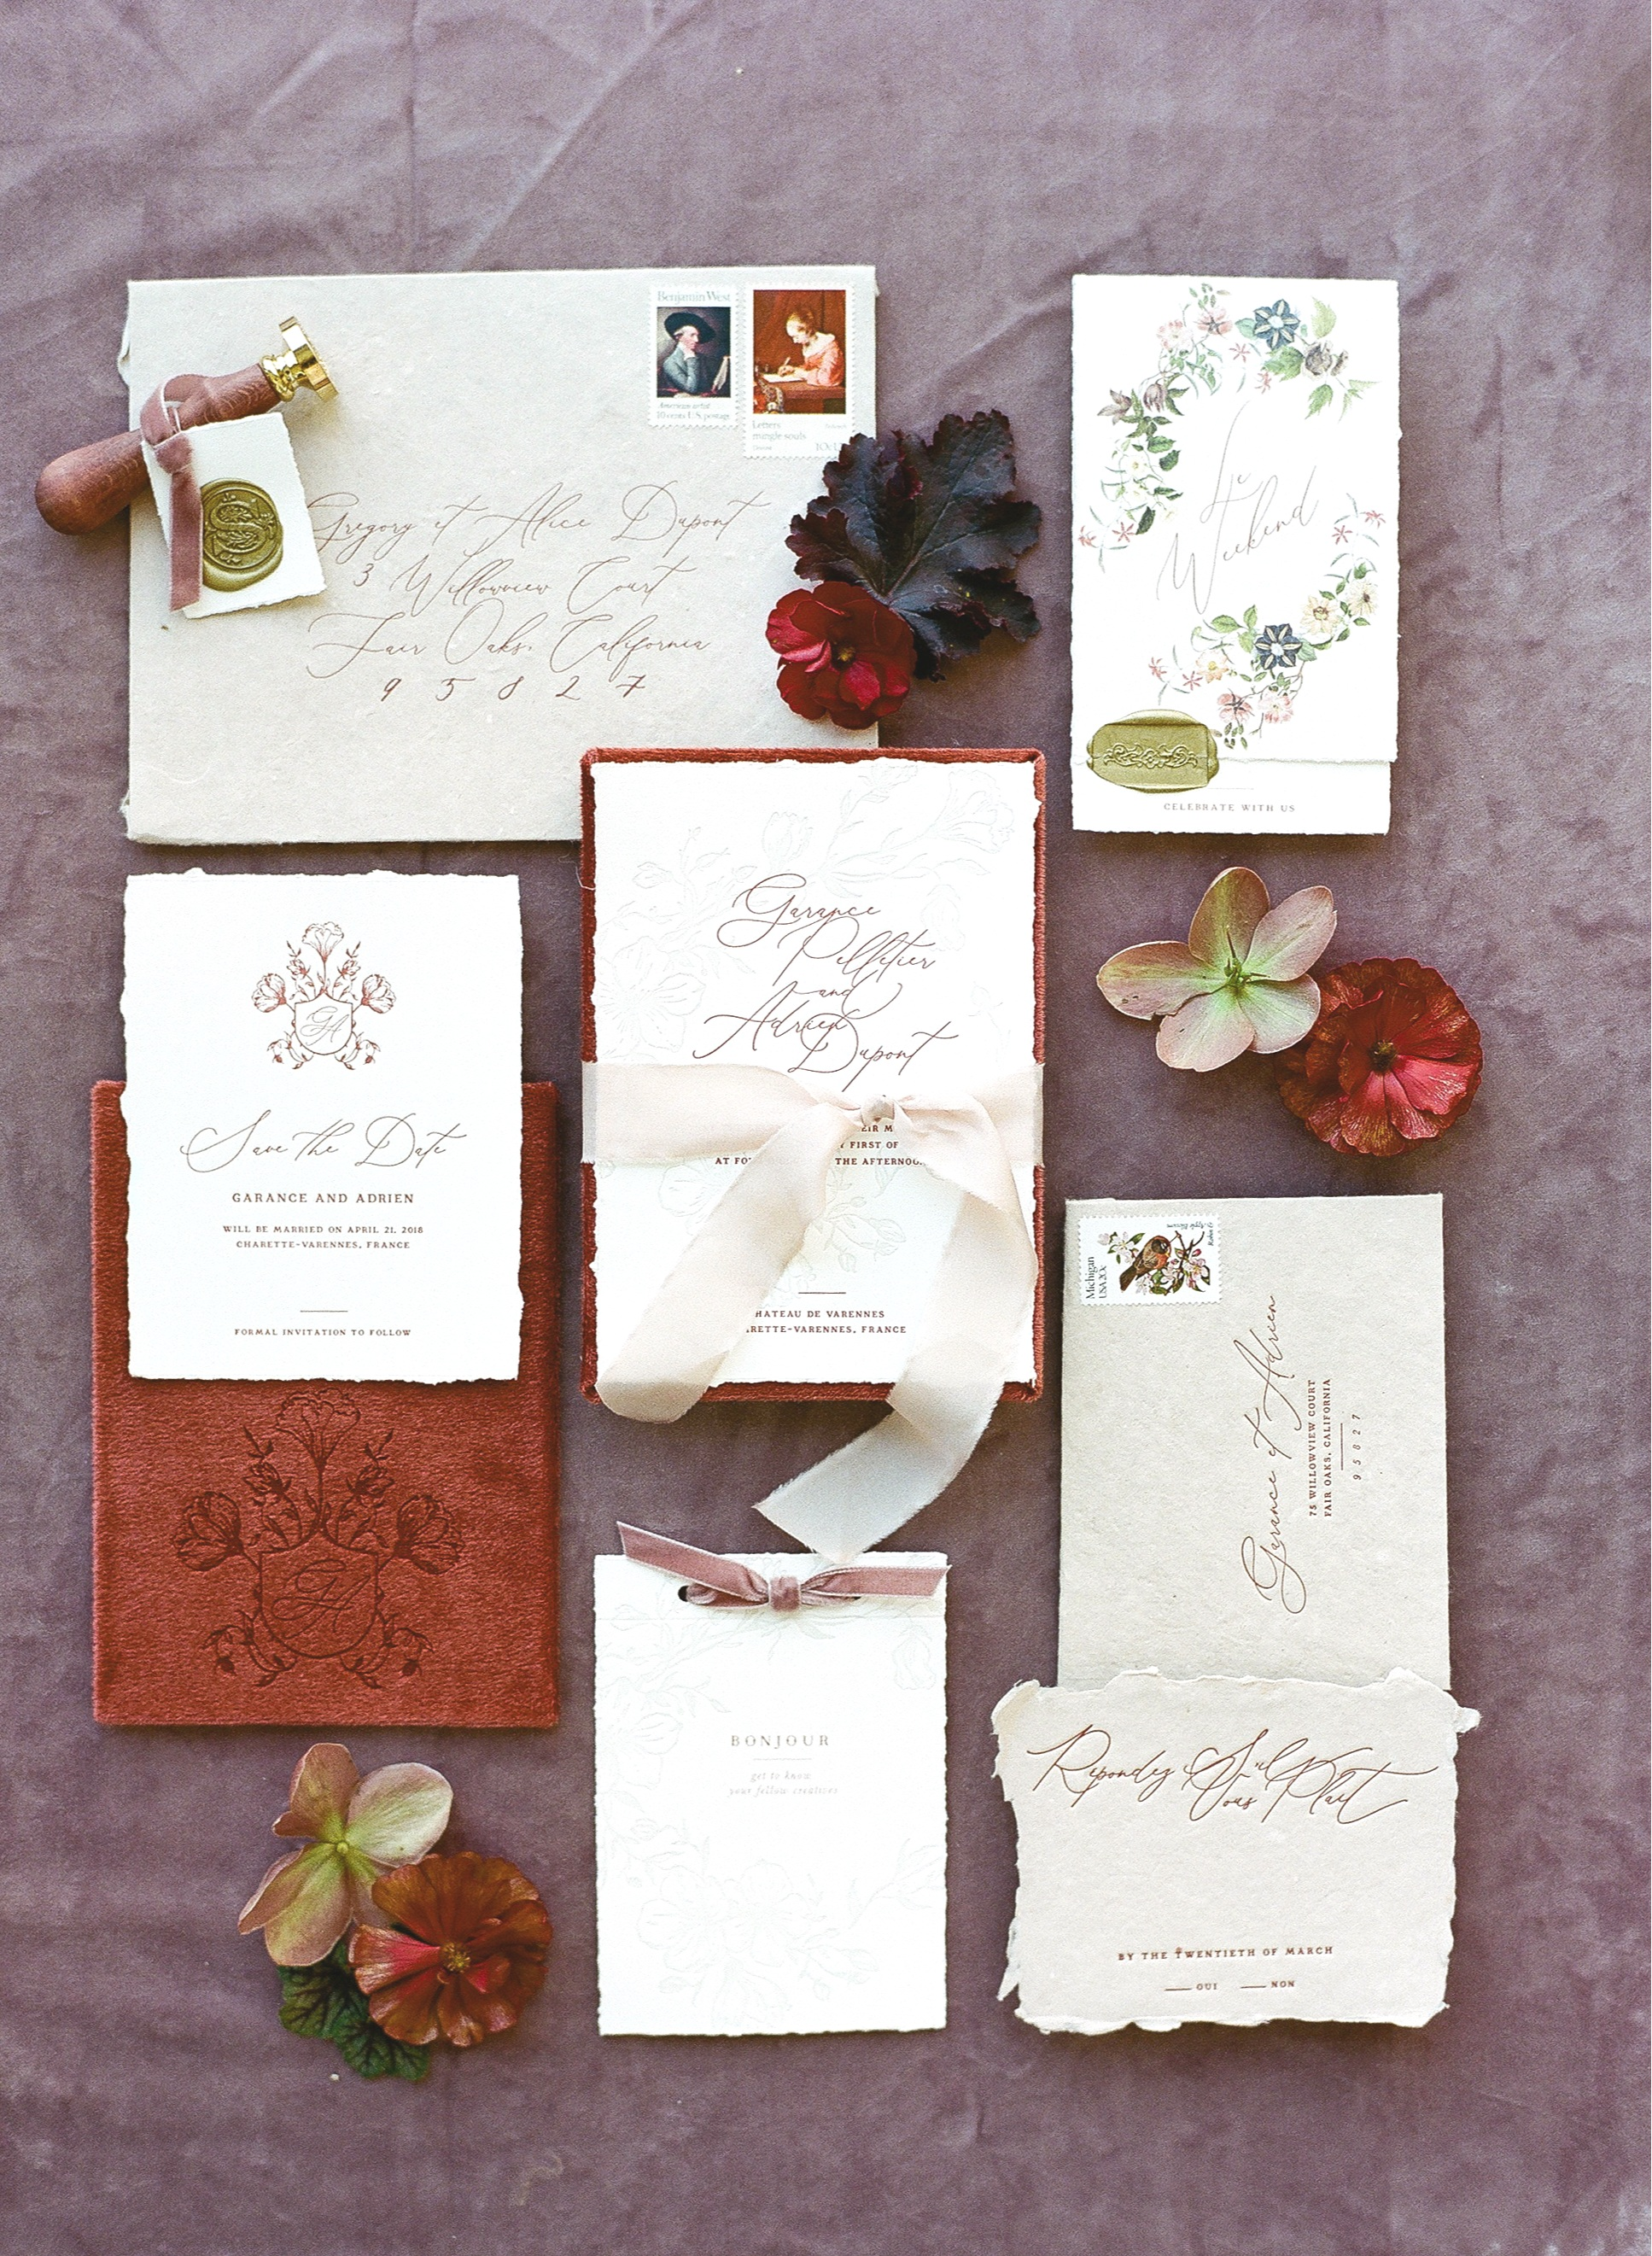 A rustic invitation suite designed with rich fabrics and colors; Sylvie Gil Photography